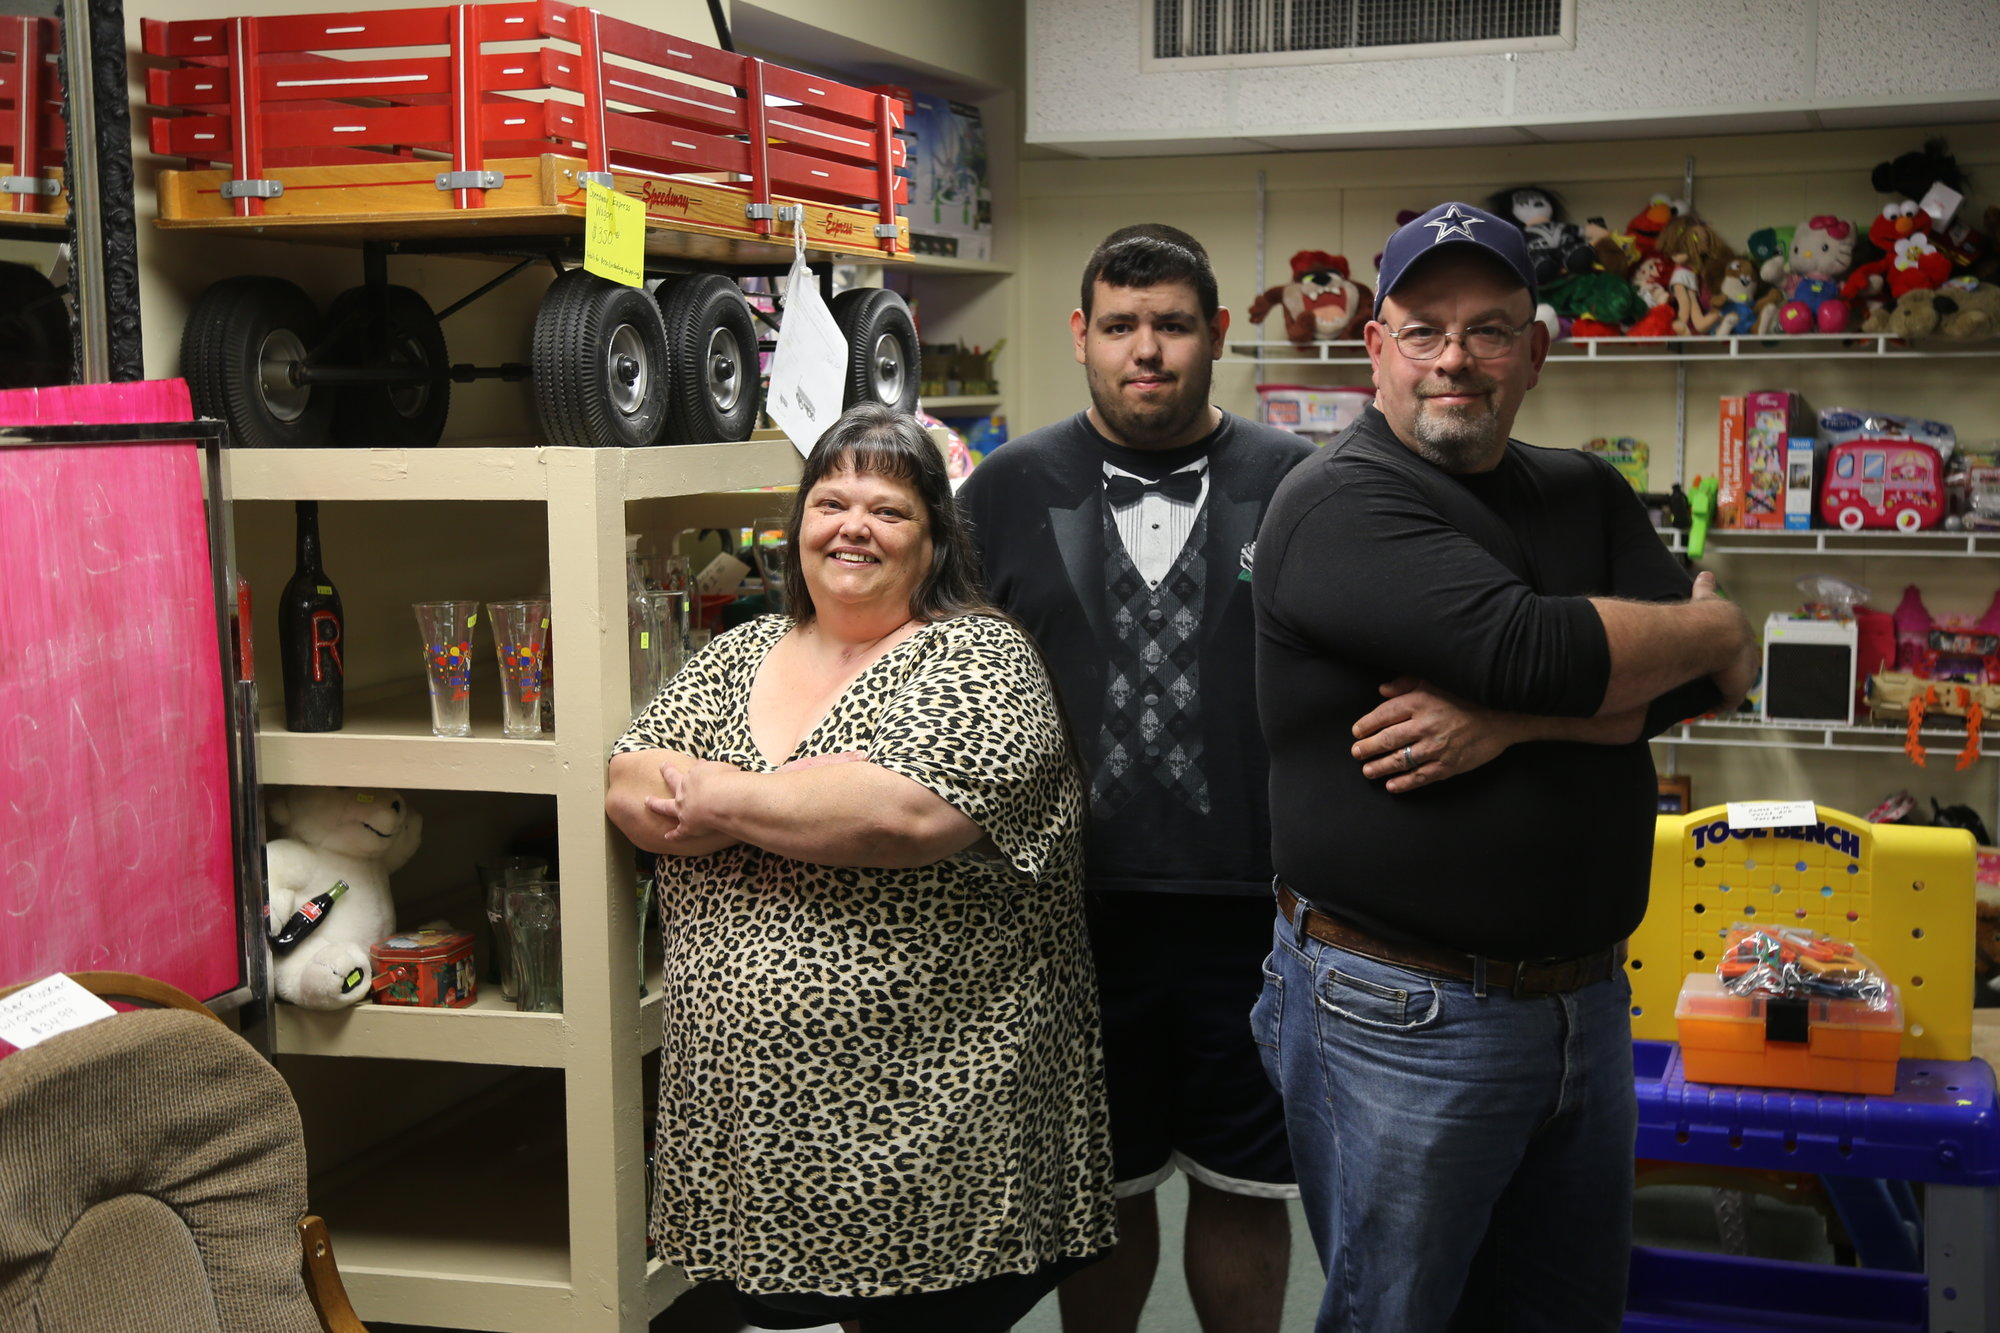 BRUCE MILLS  /  THE SUMTER ITEMThe Lloyd family, from left, Stacey, Shane and Rodney, stand in their family thrift store on Liberty Street on Tuesday.